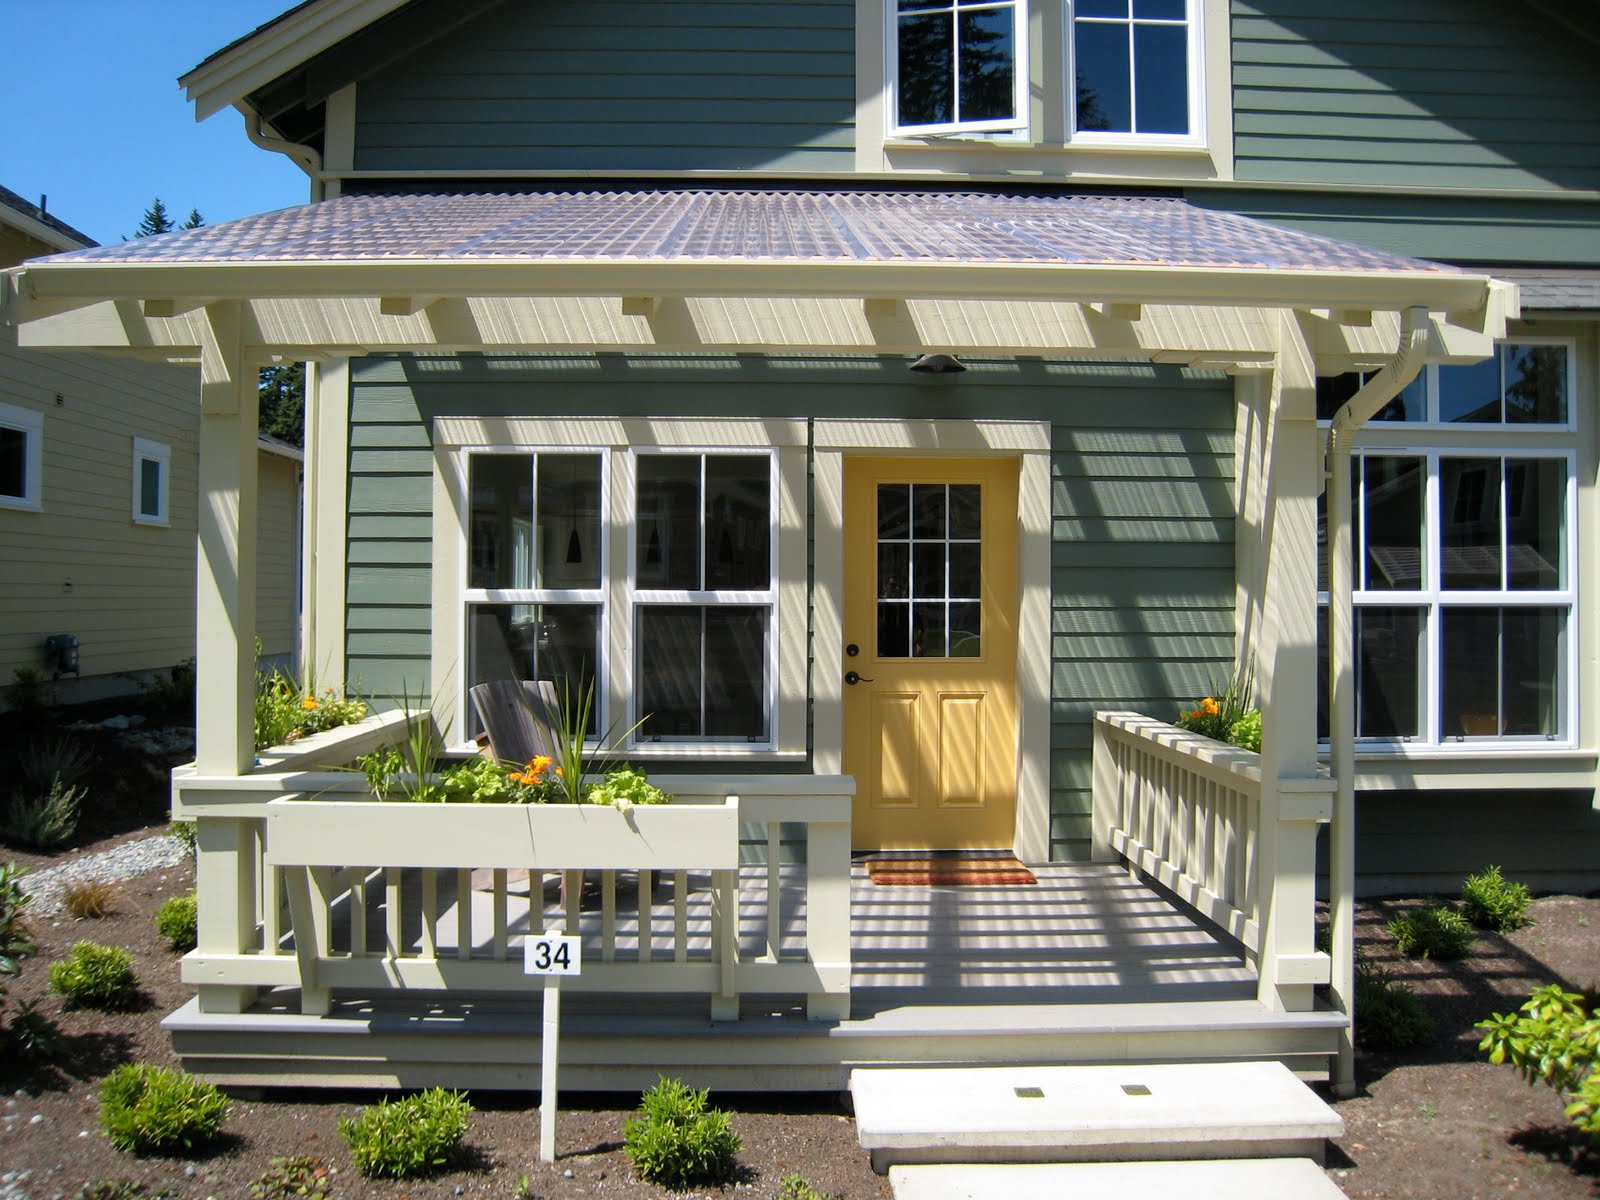 Details of home front porch inspiration ross chapin for House porch